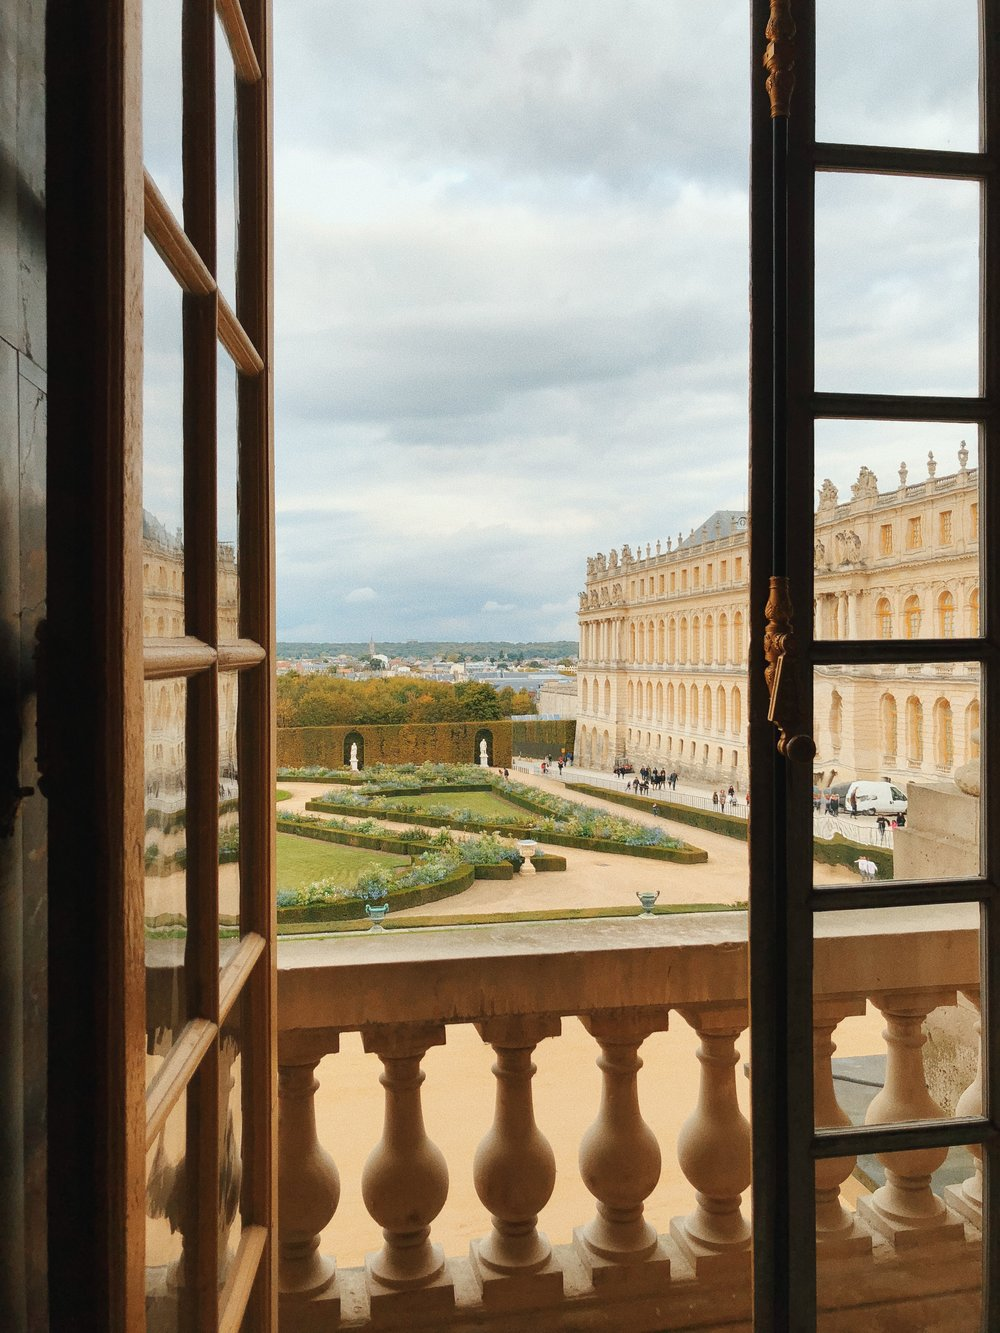 Palace of Versailles // Travel blog // Paris travel tips // The Style Sauce blog